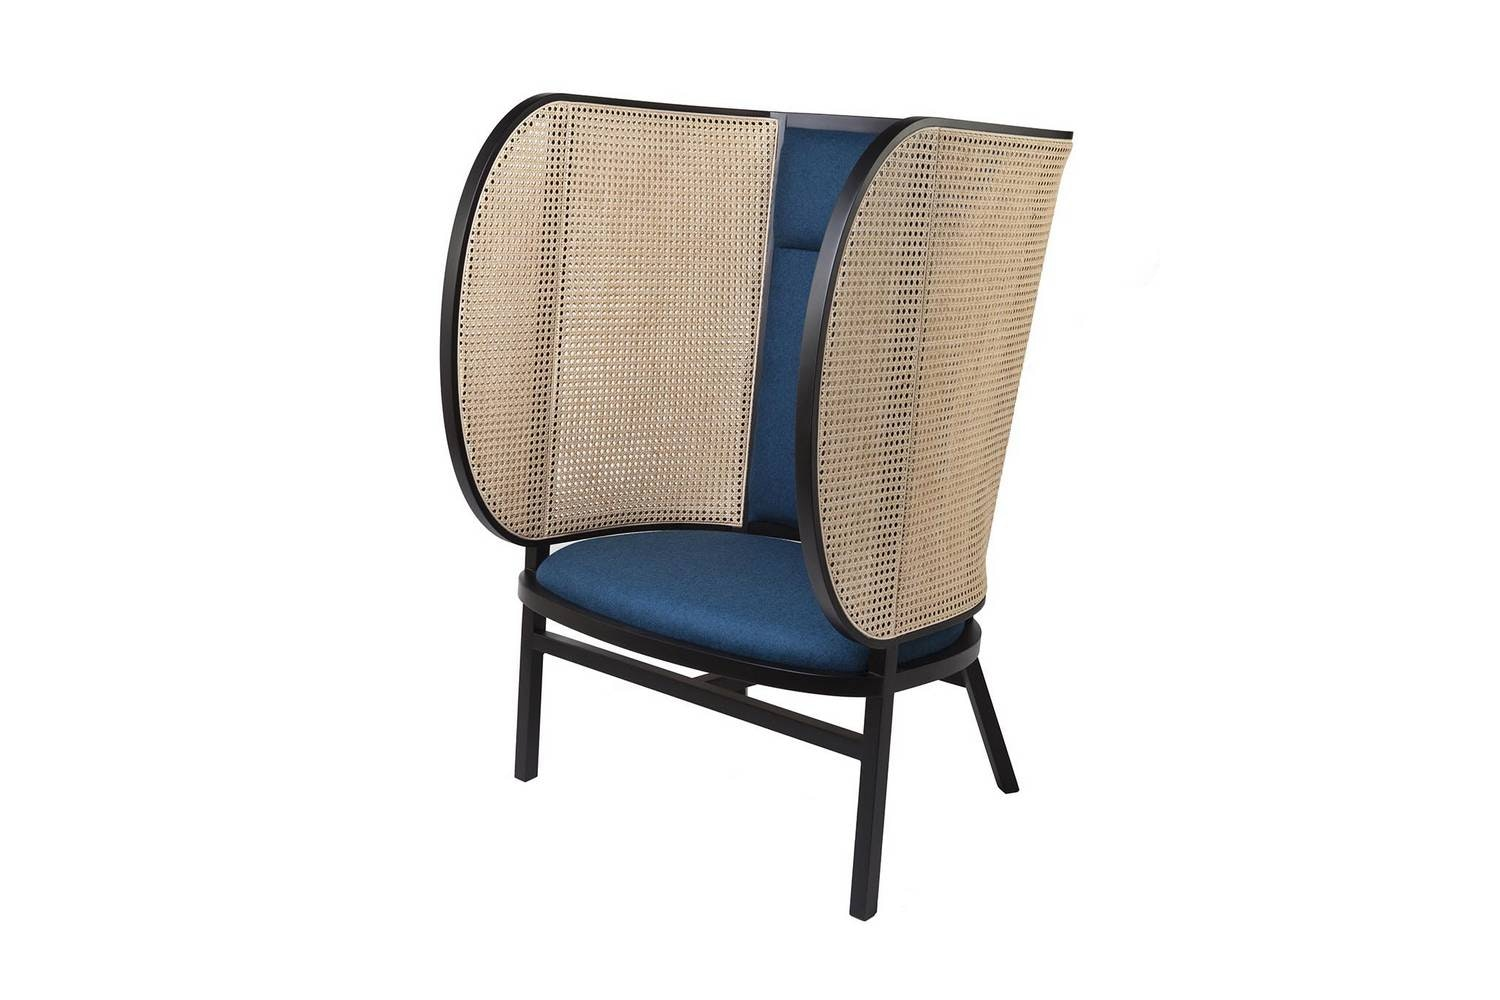 Hideout Lounge Chair by Front for Wiener GTV Design